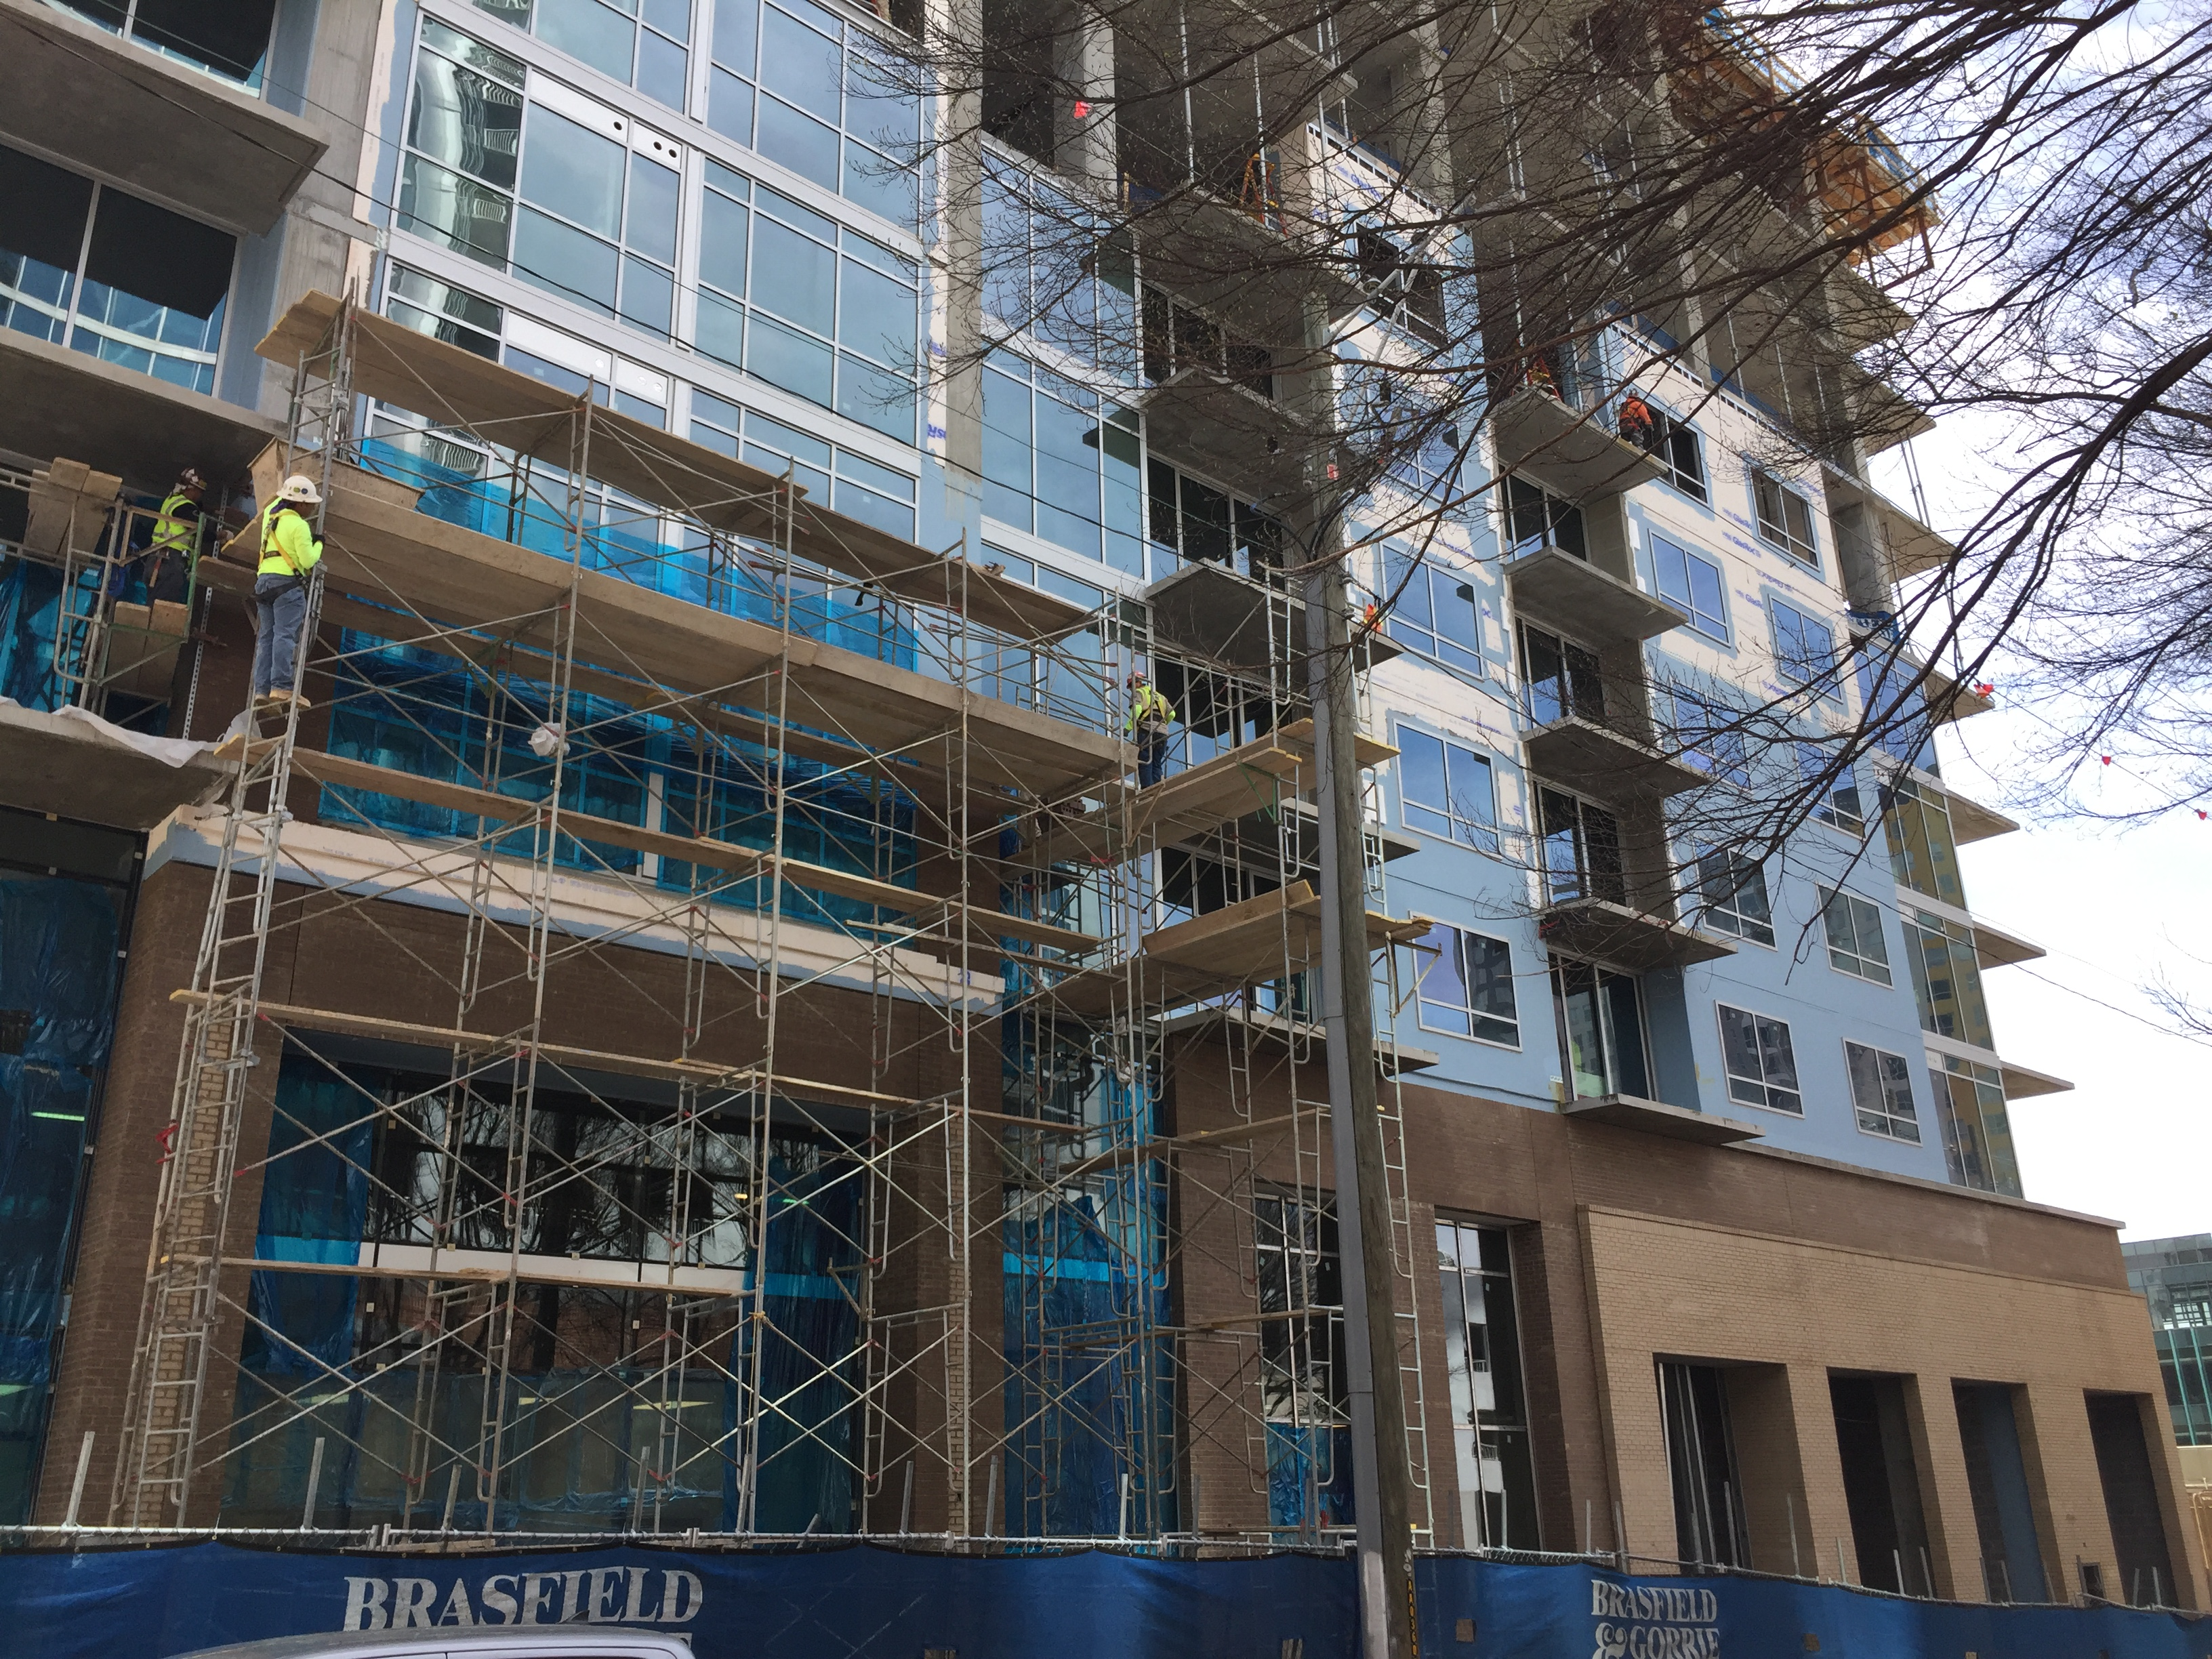 Brick is being applied to the base of the high-rise as work continues pouring the upper floors.